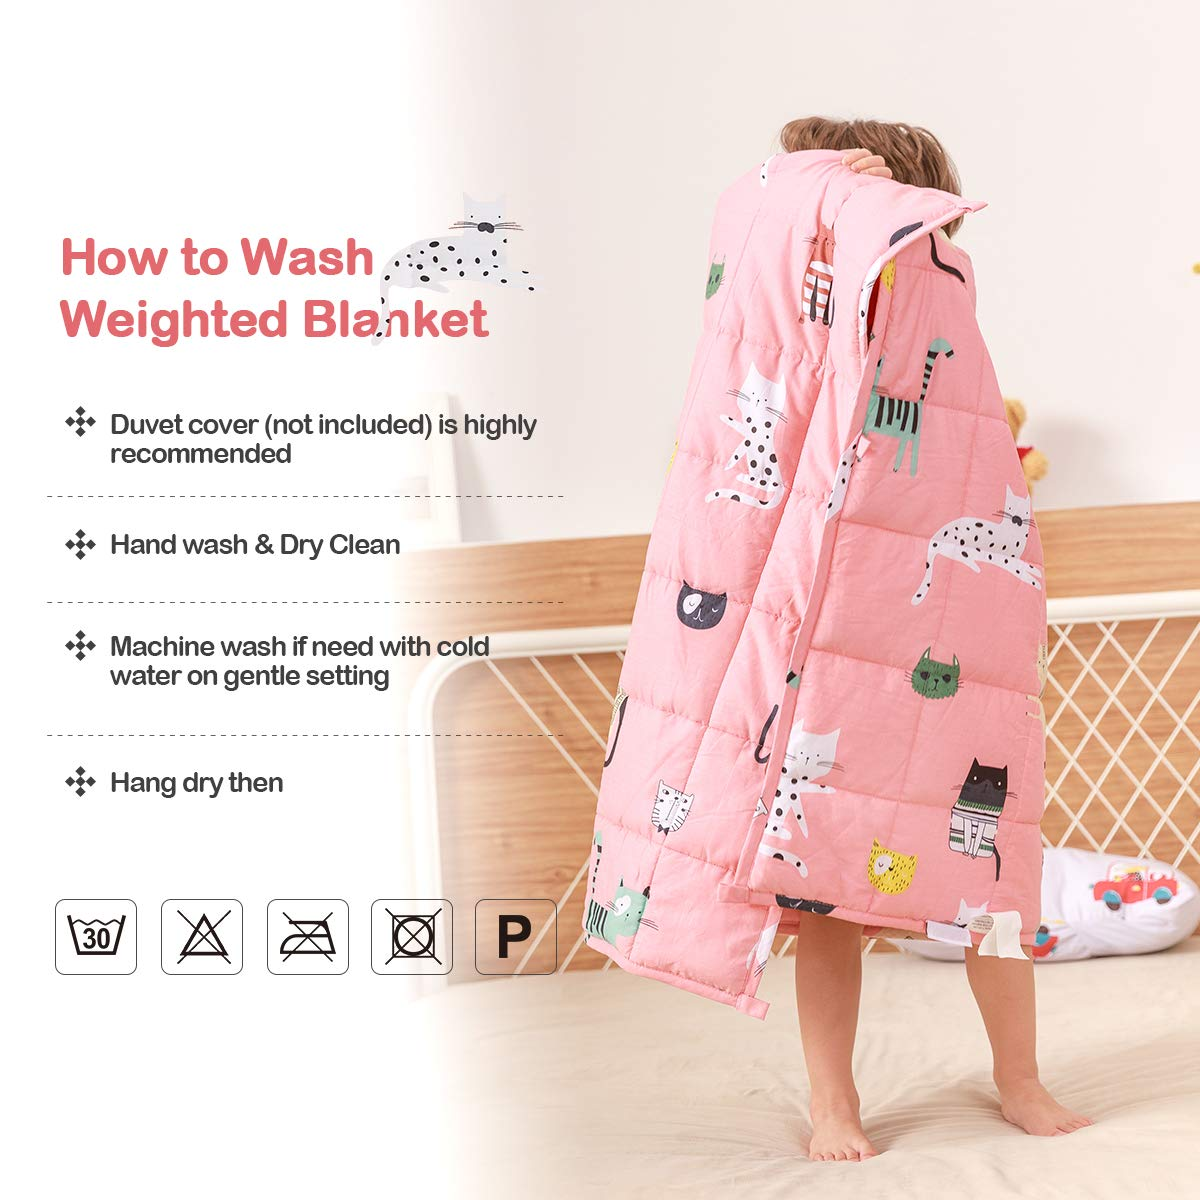 Sivio Weighted Blanket for Kids 36x48 Inches 100/% Breathable Natural Cotton, 5 lbs Heavy Blanket Pink Cat